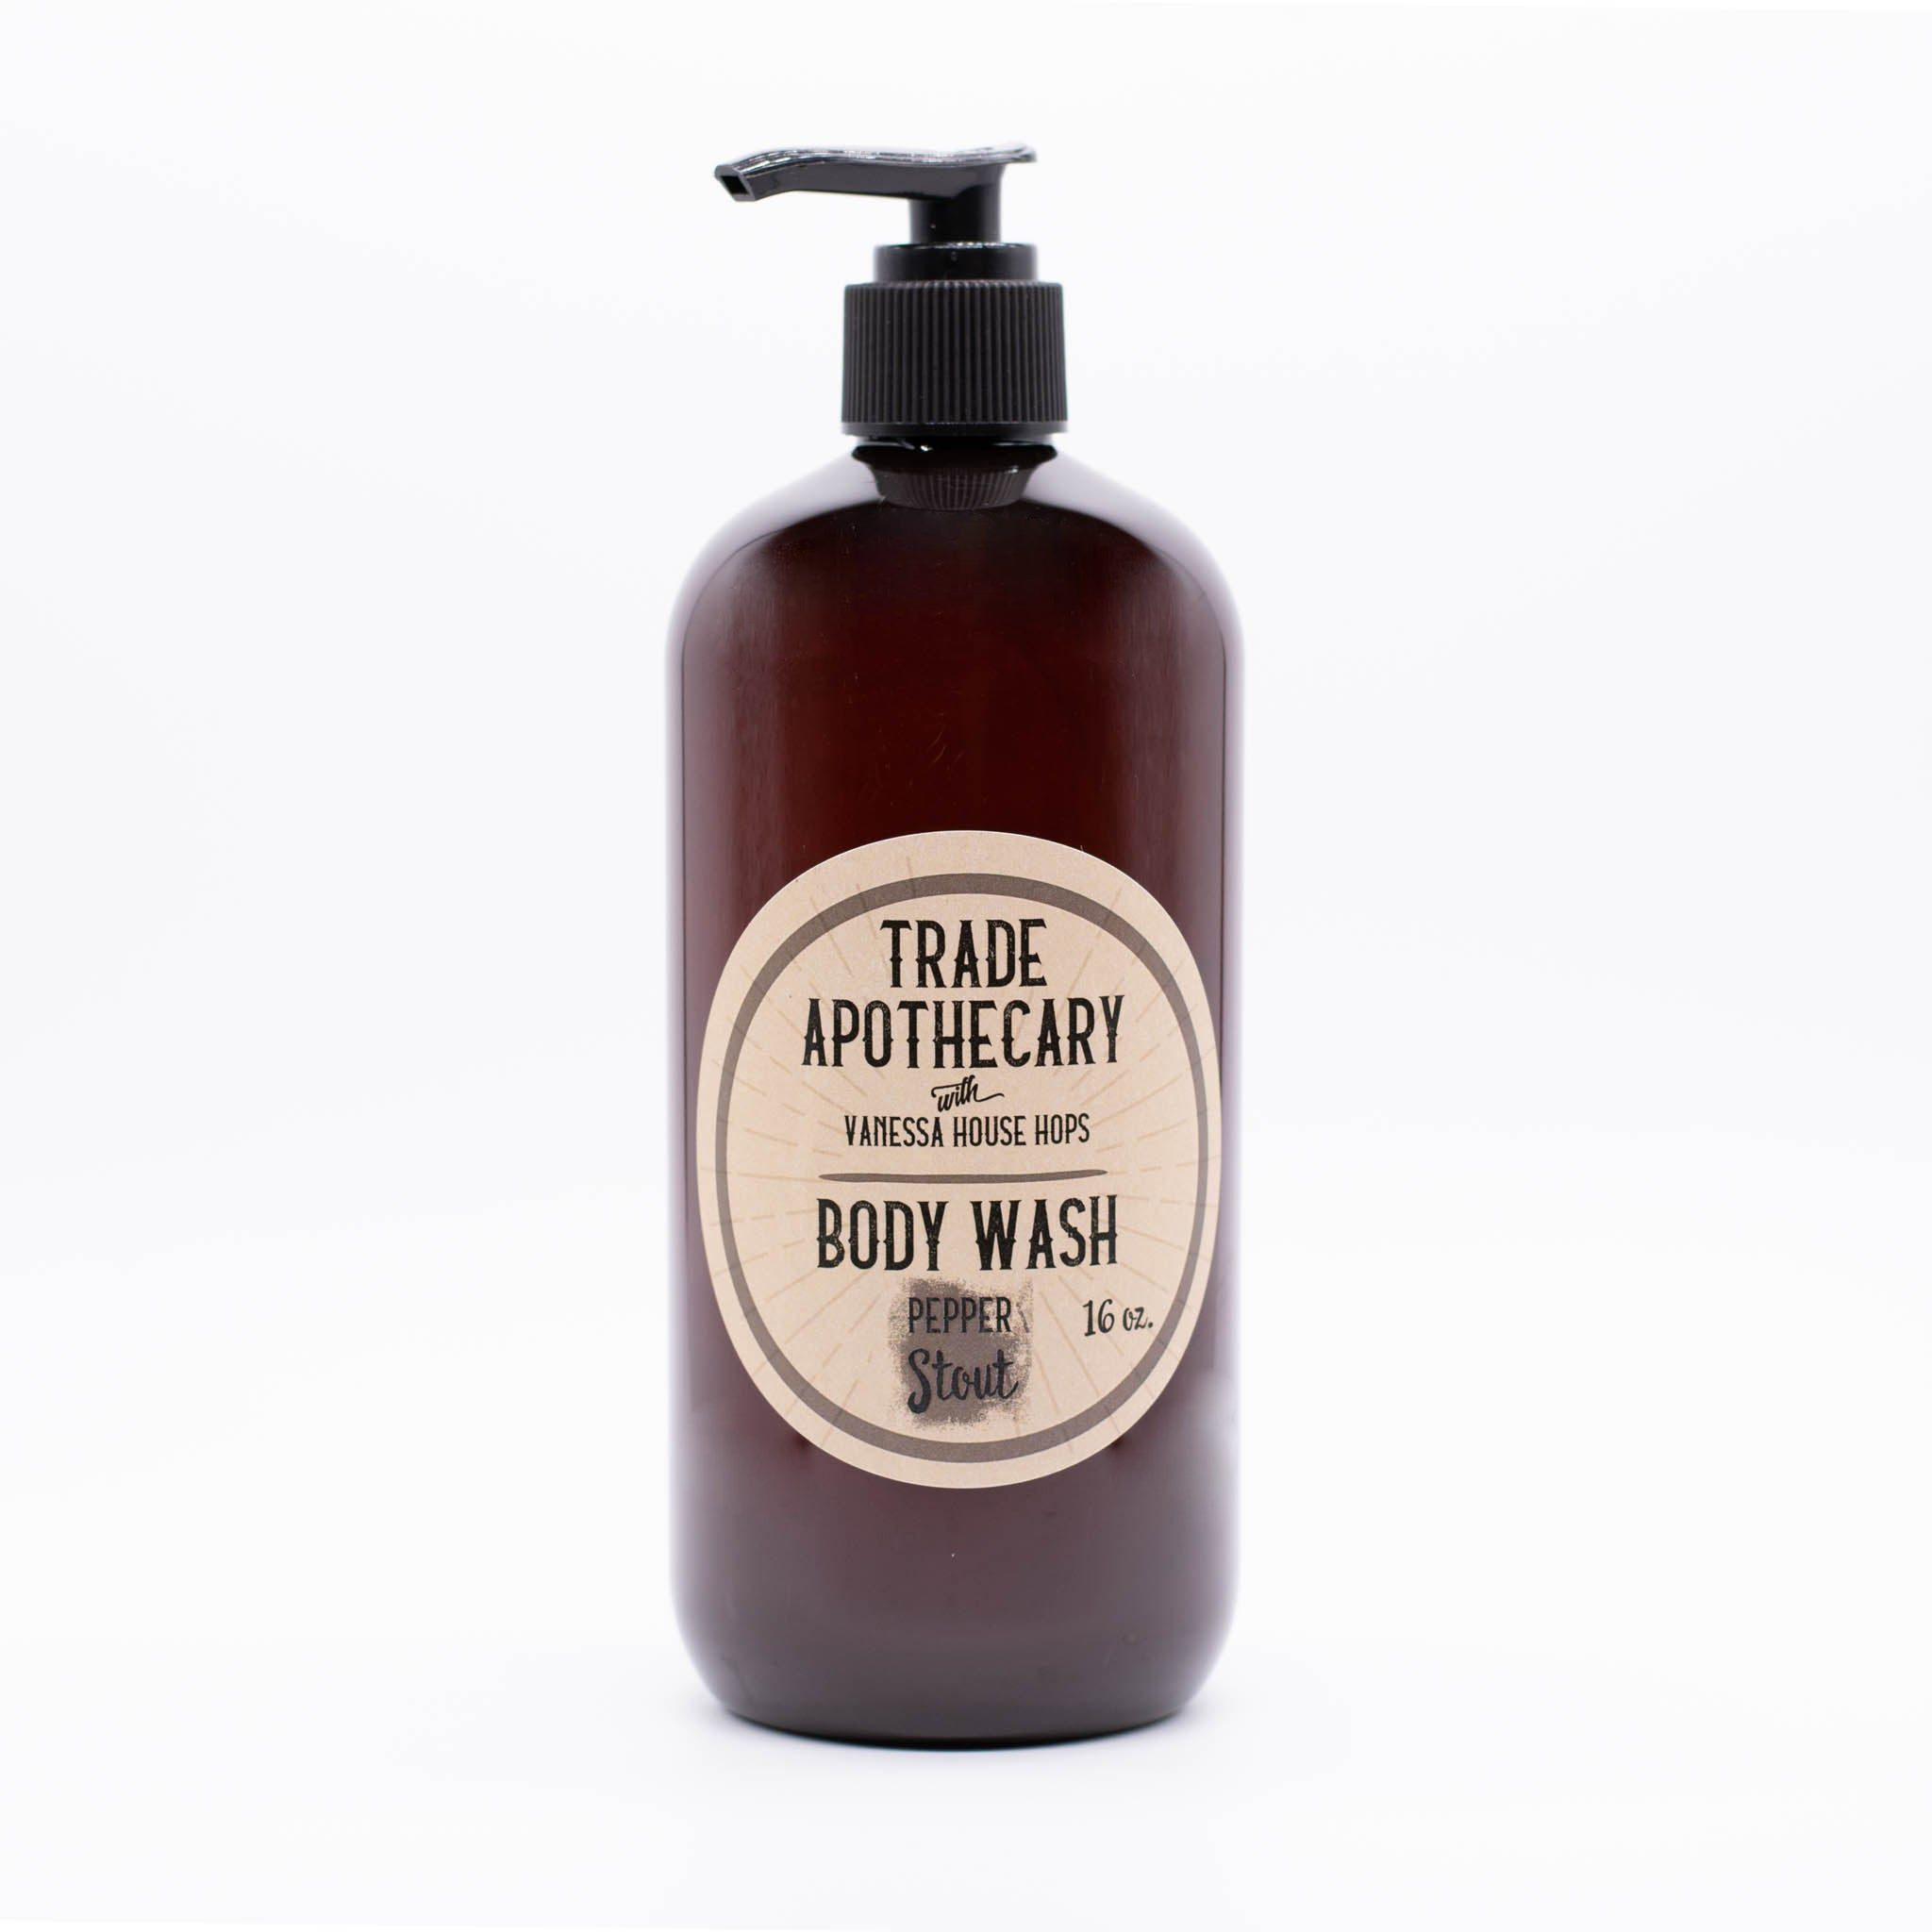 Pepper Stout Body Wash